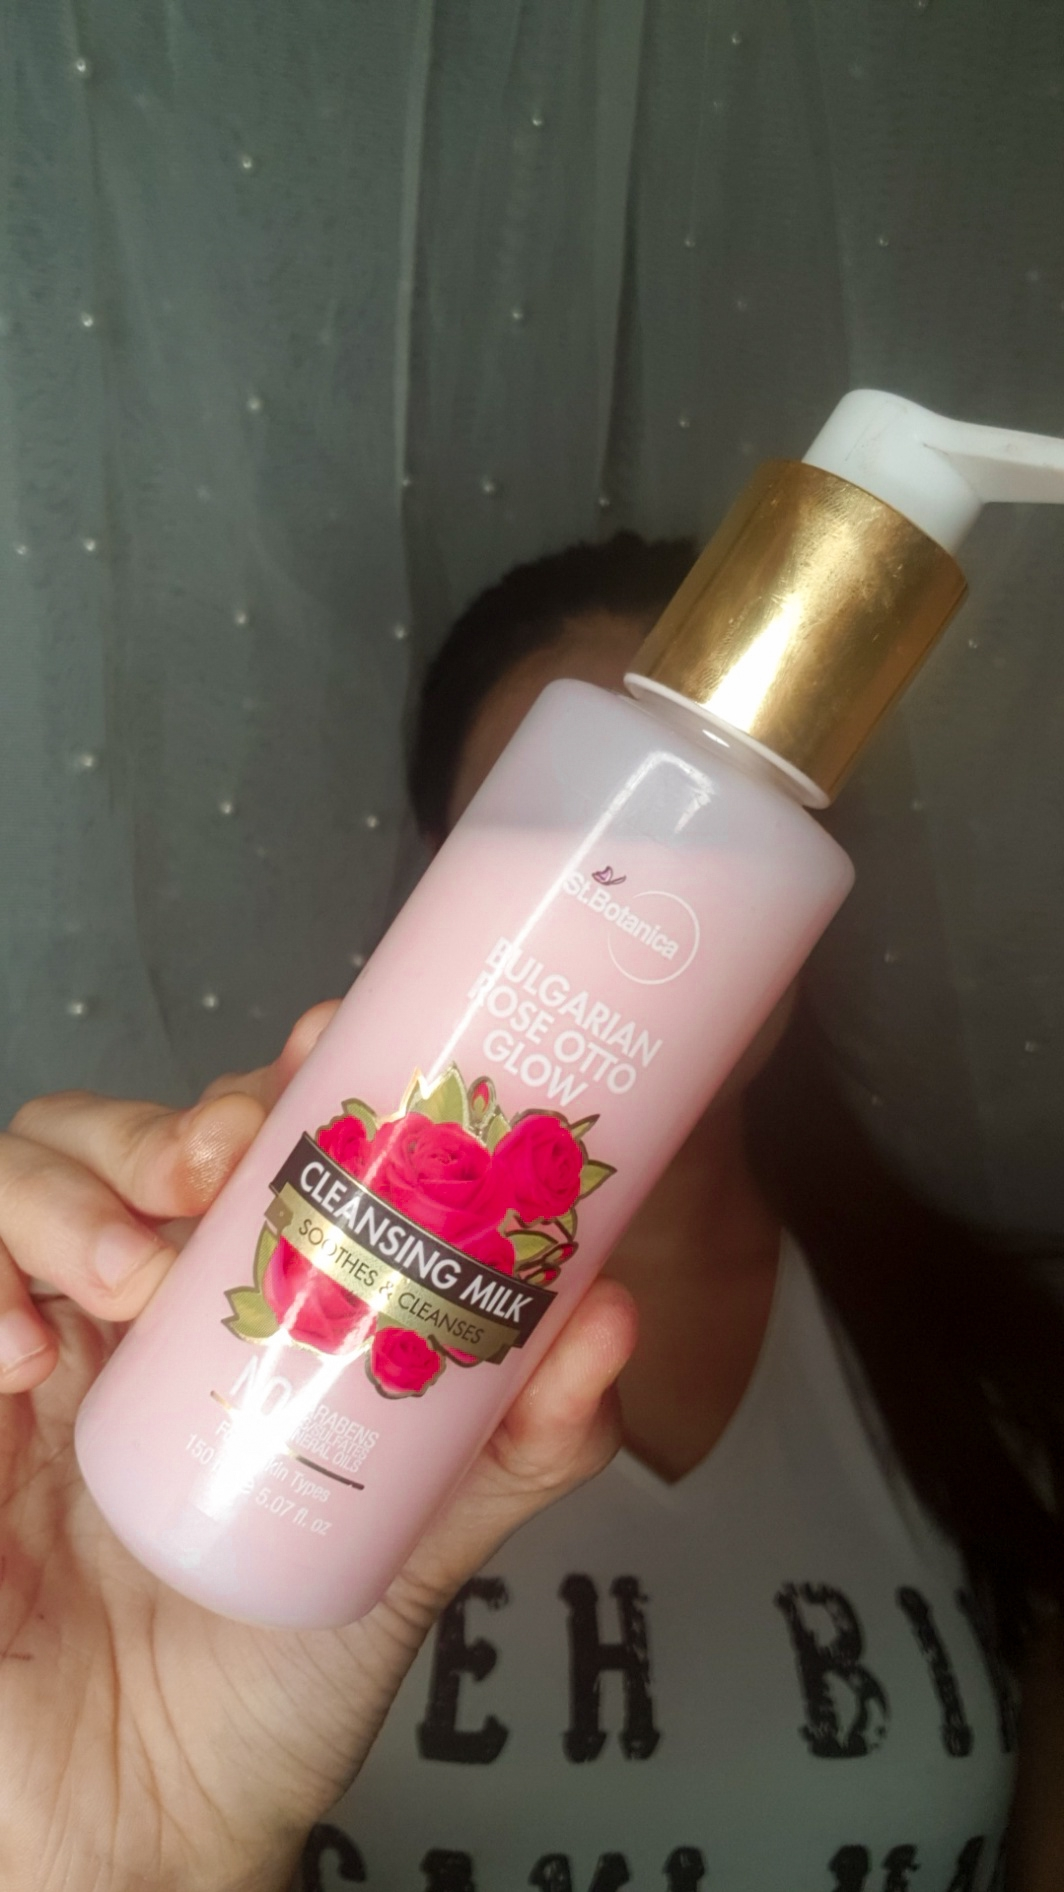 StBotanica Bulgarian Rose Otto Glow Cleansing Milk pic 2-Removes makeup like magic-By prarthanakapoor.official_